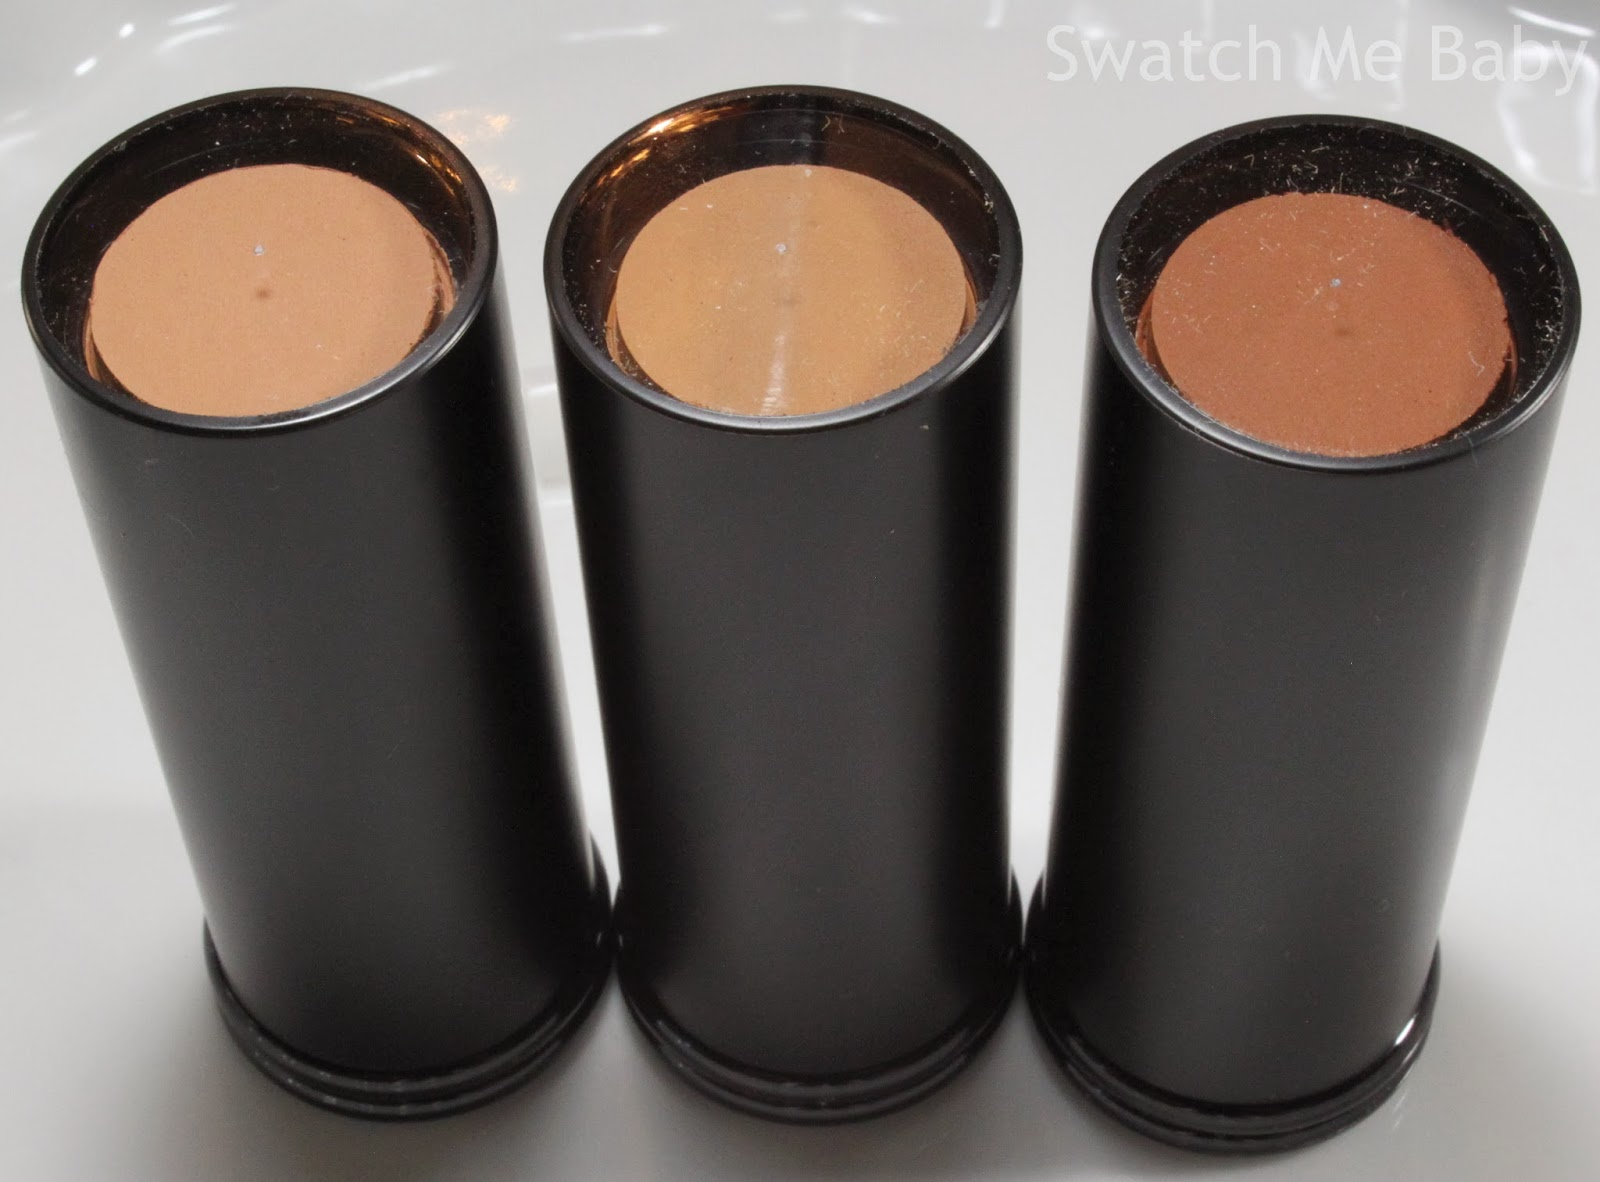 Black Opal True Color Stick Foundation SPF15 in Heavenly Honey, Truly Topaz & Hazelnut